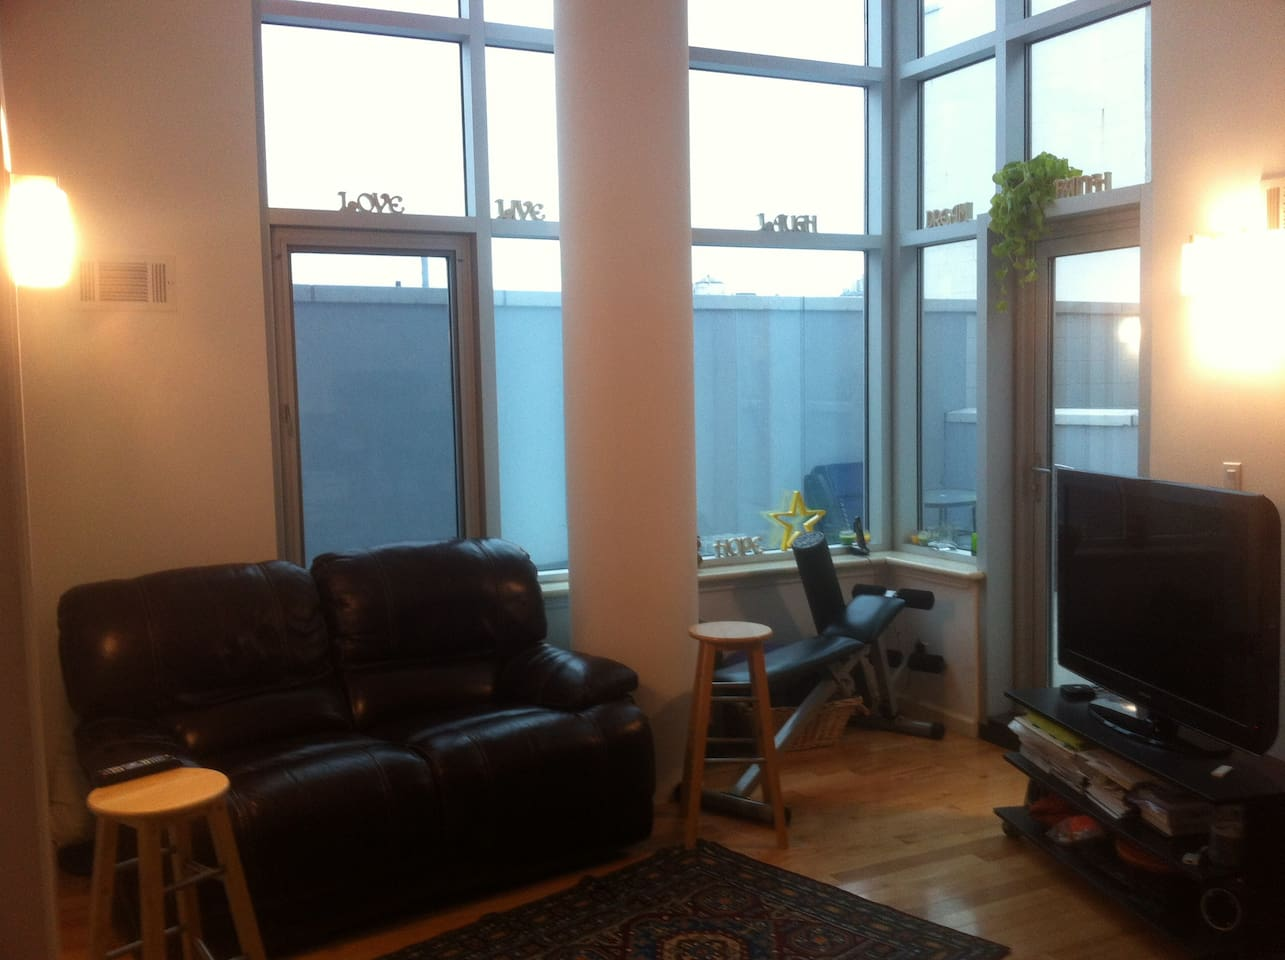 Living Room - 18 Foot Ceilings, Ceiling to Floor Windows. Beautiful Private Outdoor Space